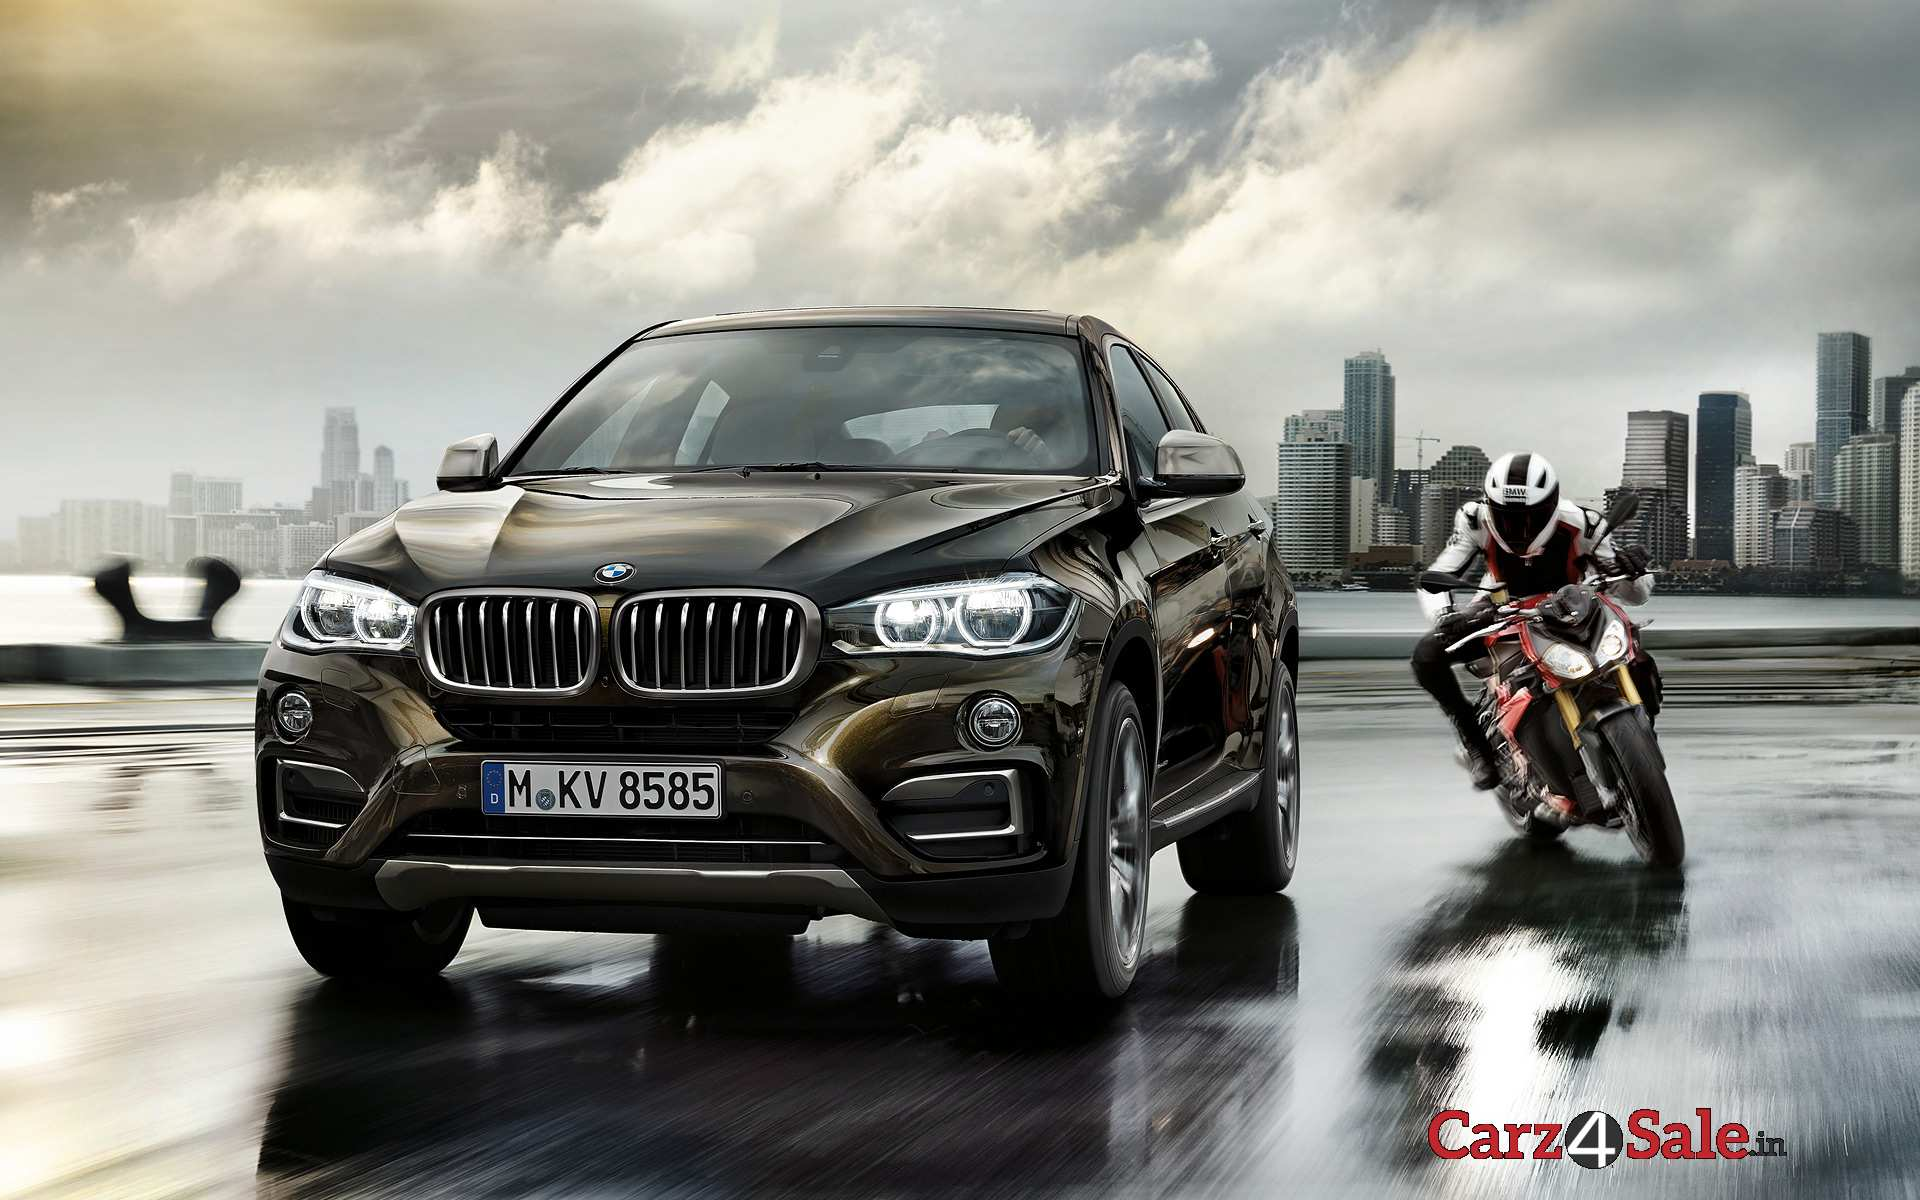 2015 Bmw X6 Front Right Angle